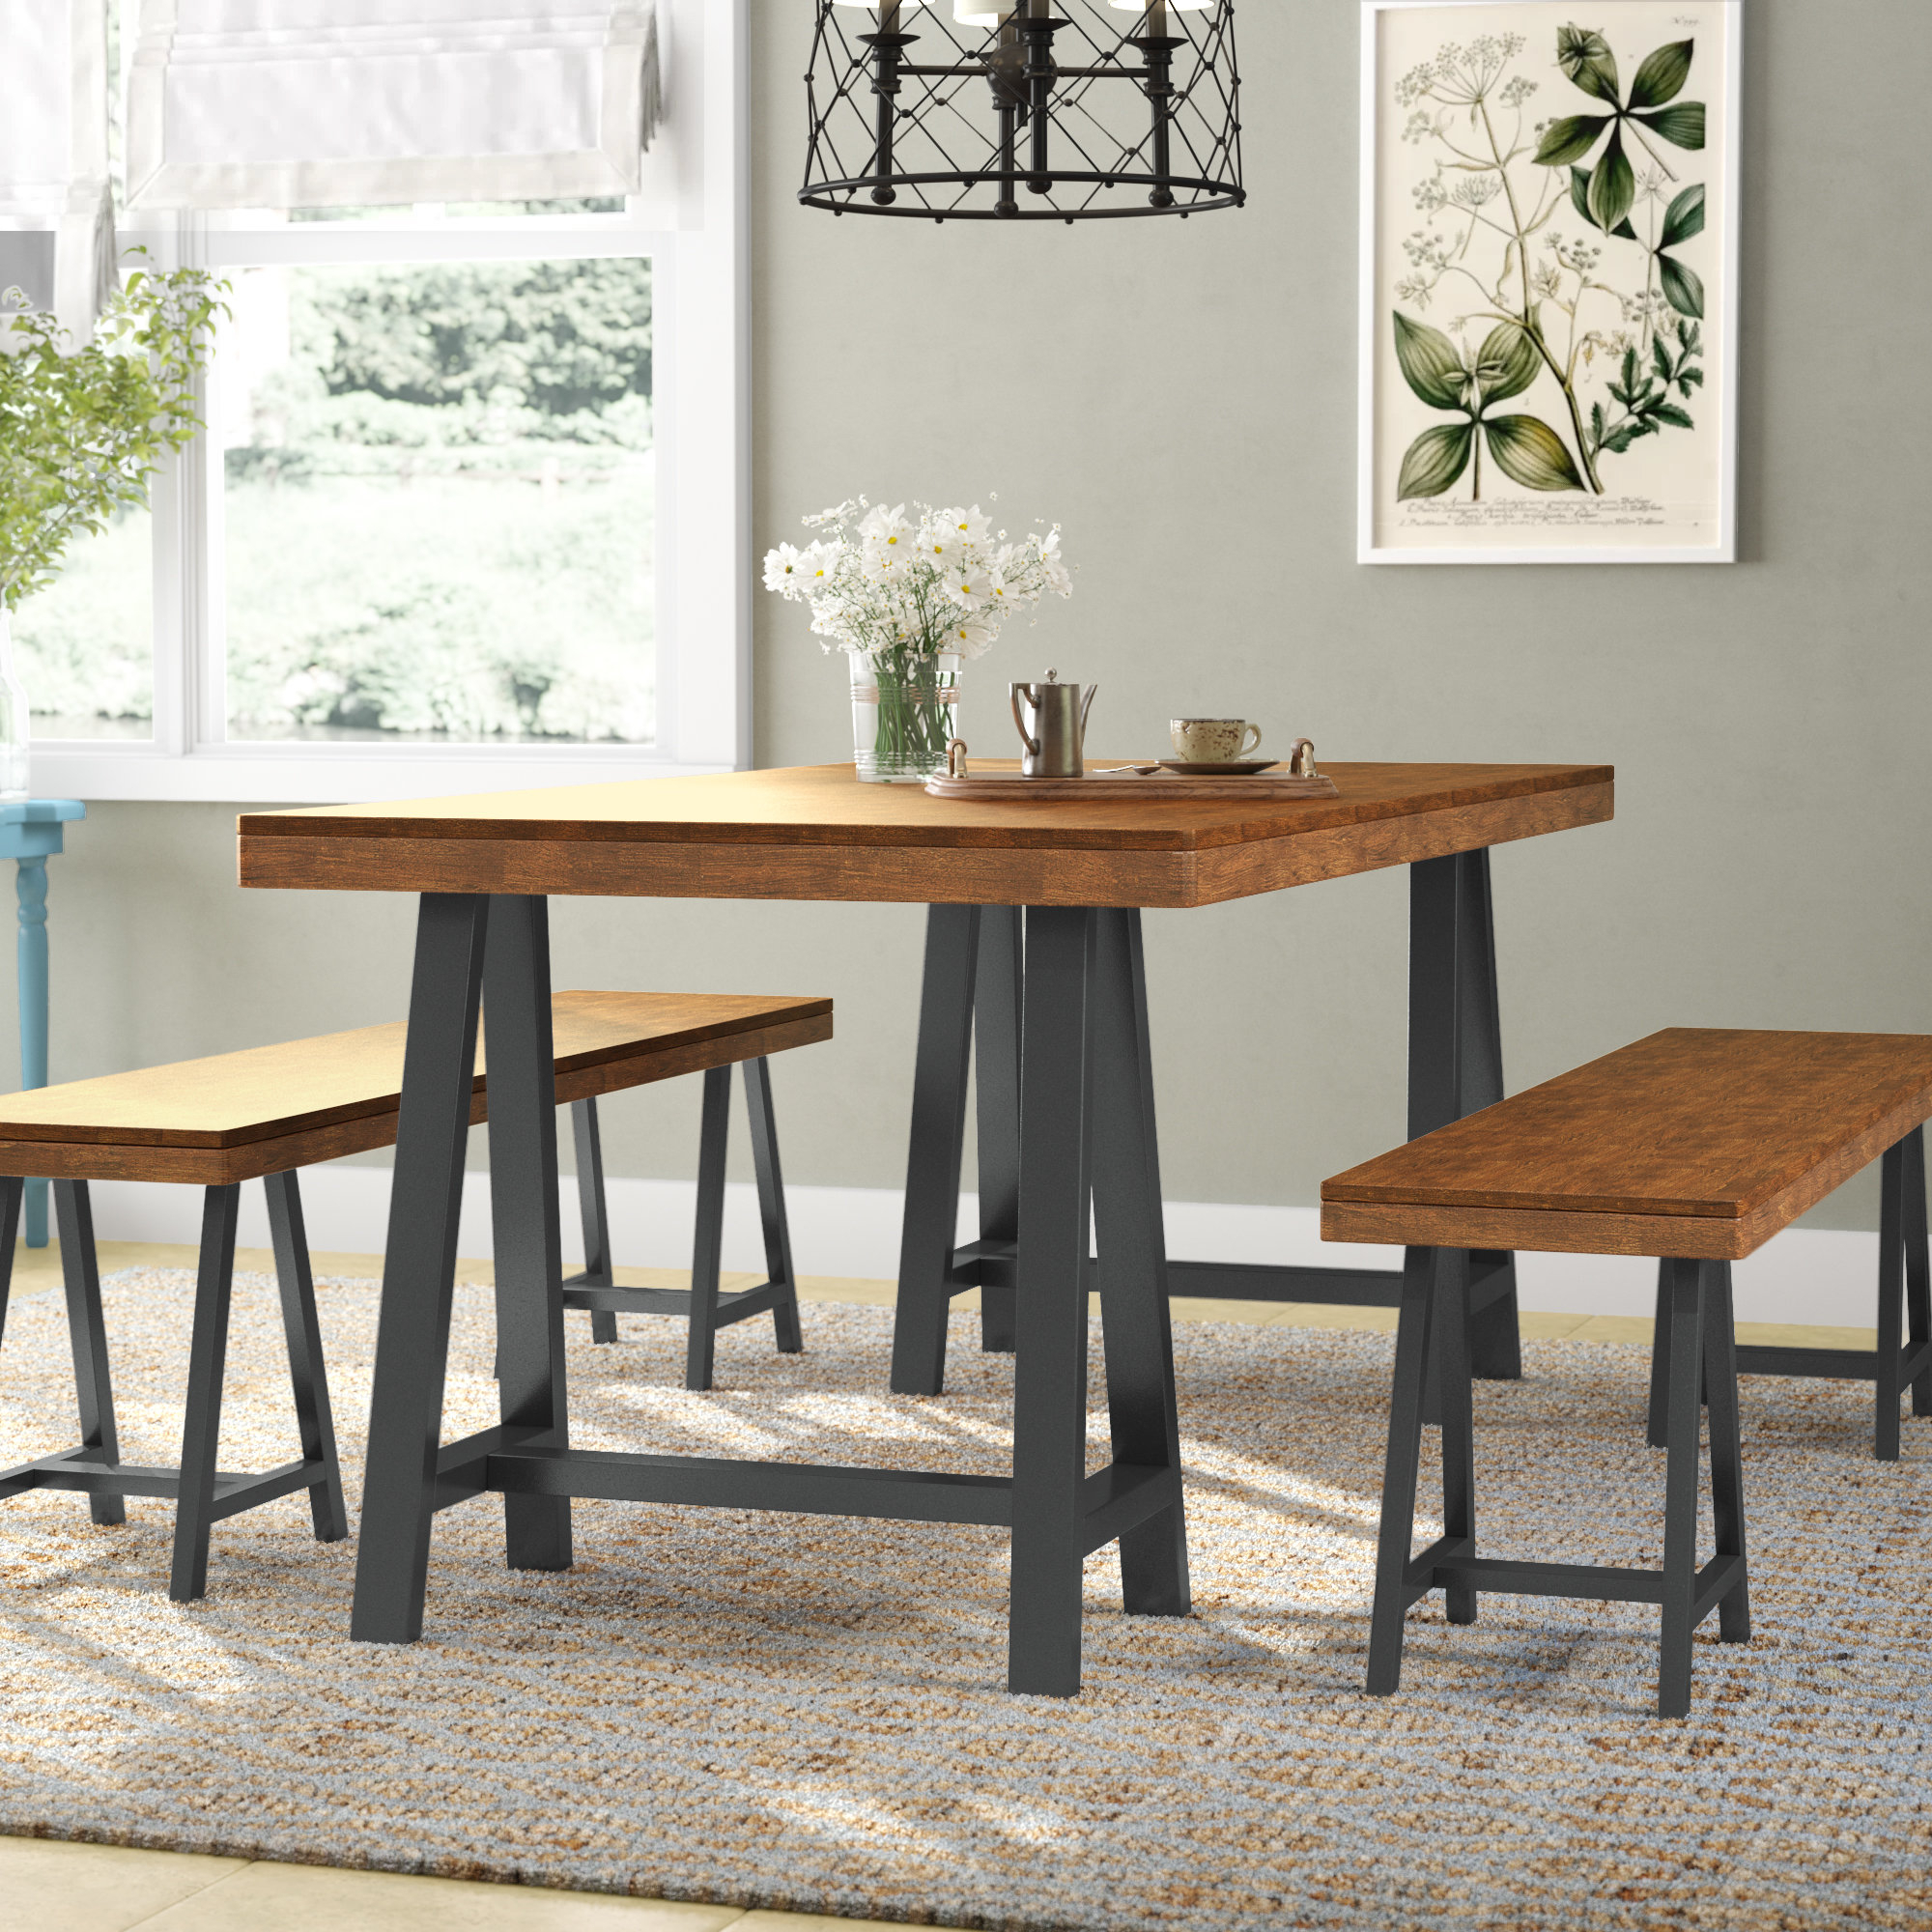 Mannino Wood Picnic 3 Piece Dining Set For Latest Kerley 4 Piece Dining Sets (Image 9 of 20)